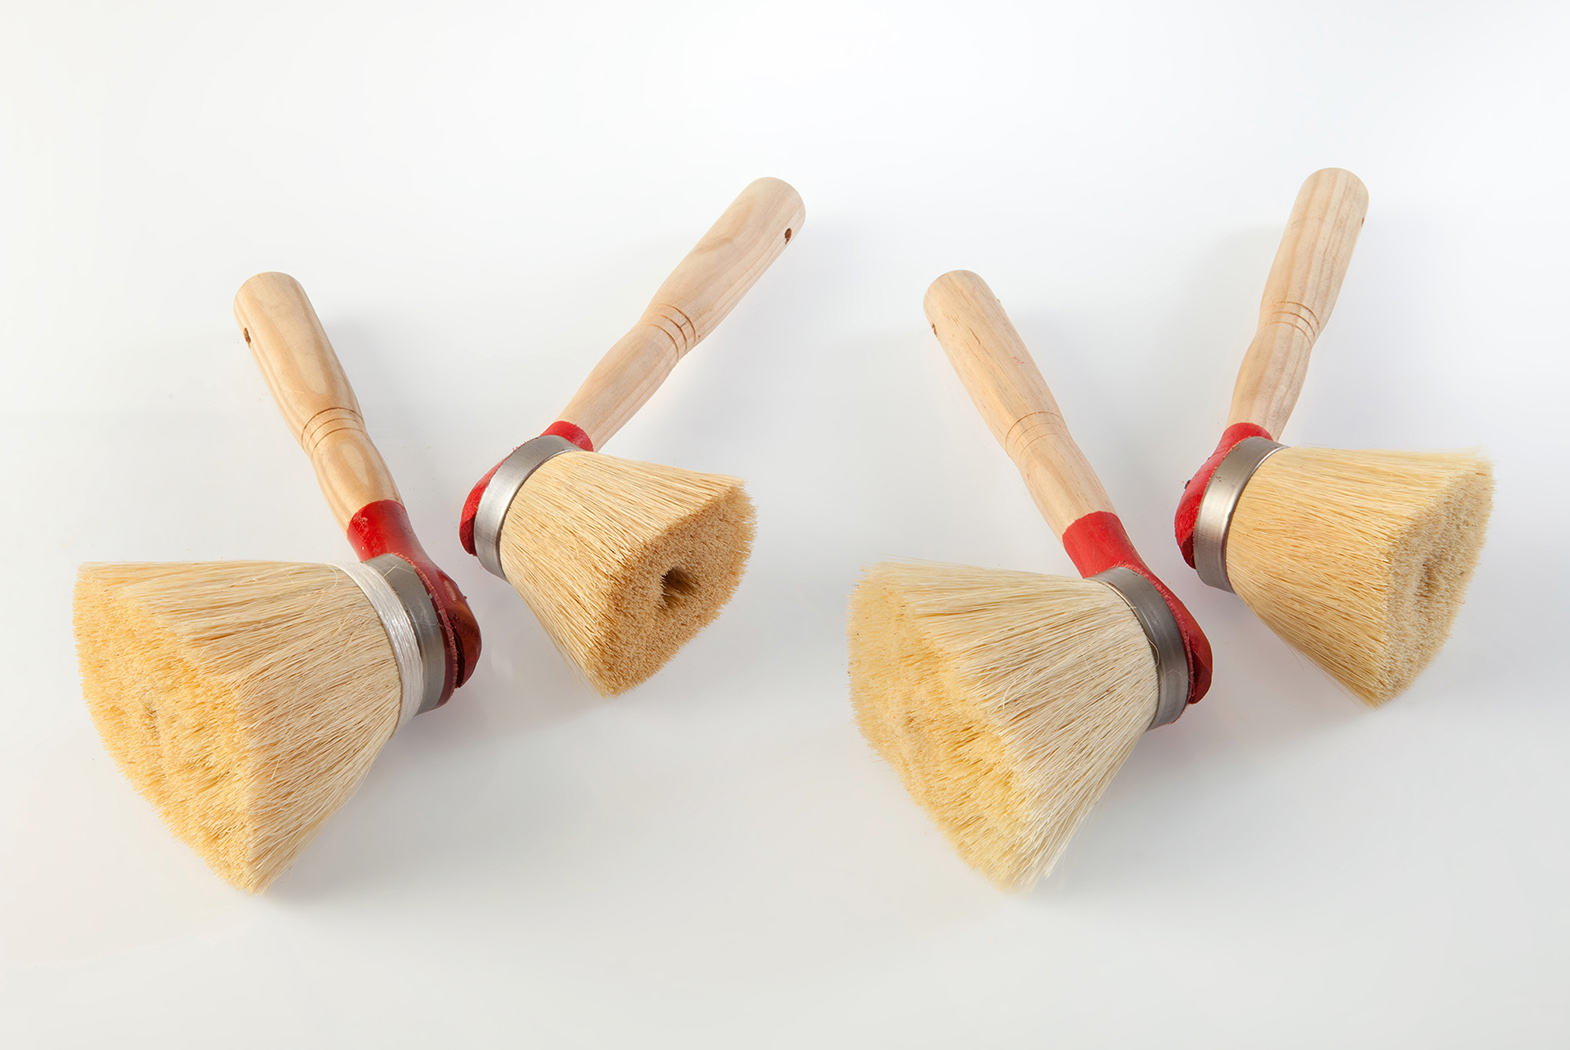 Round brushes whitewash